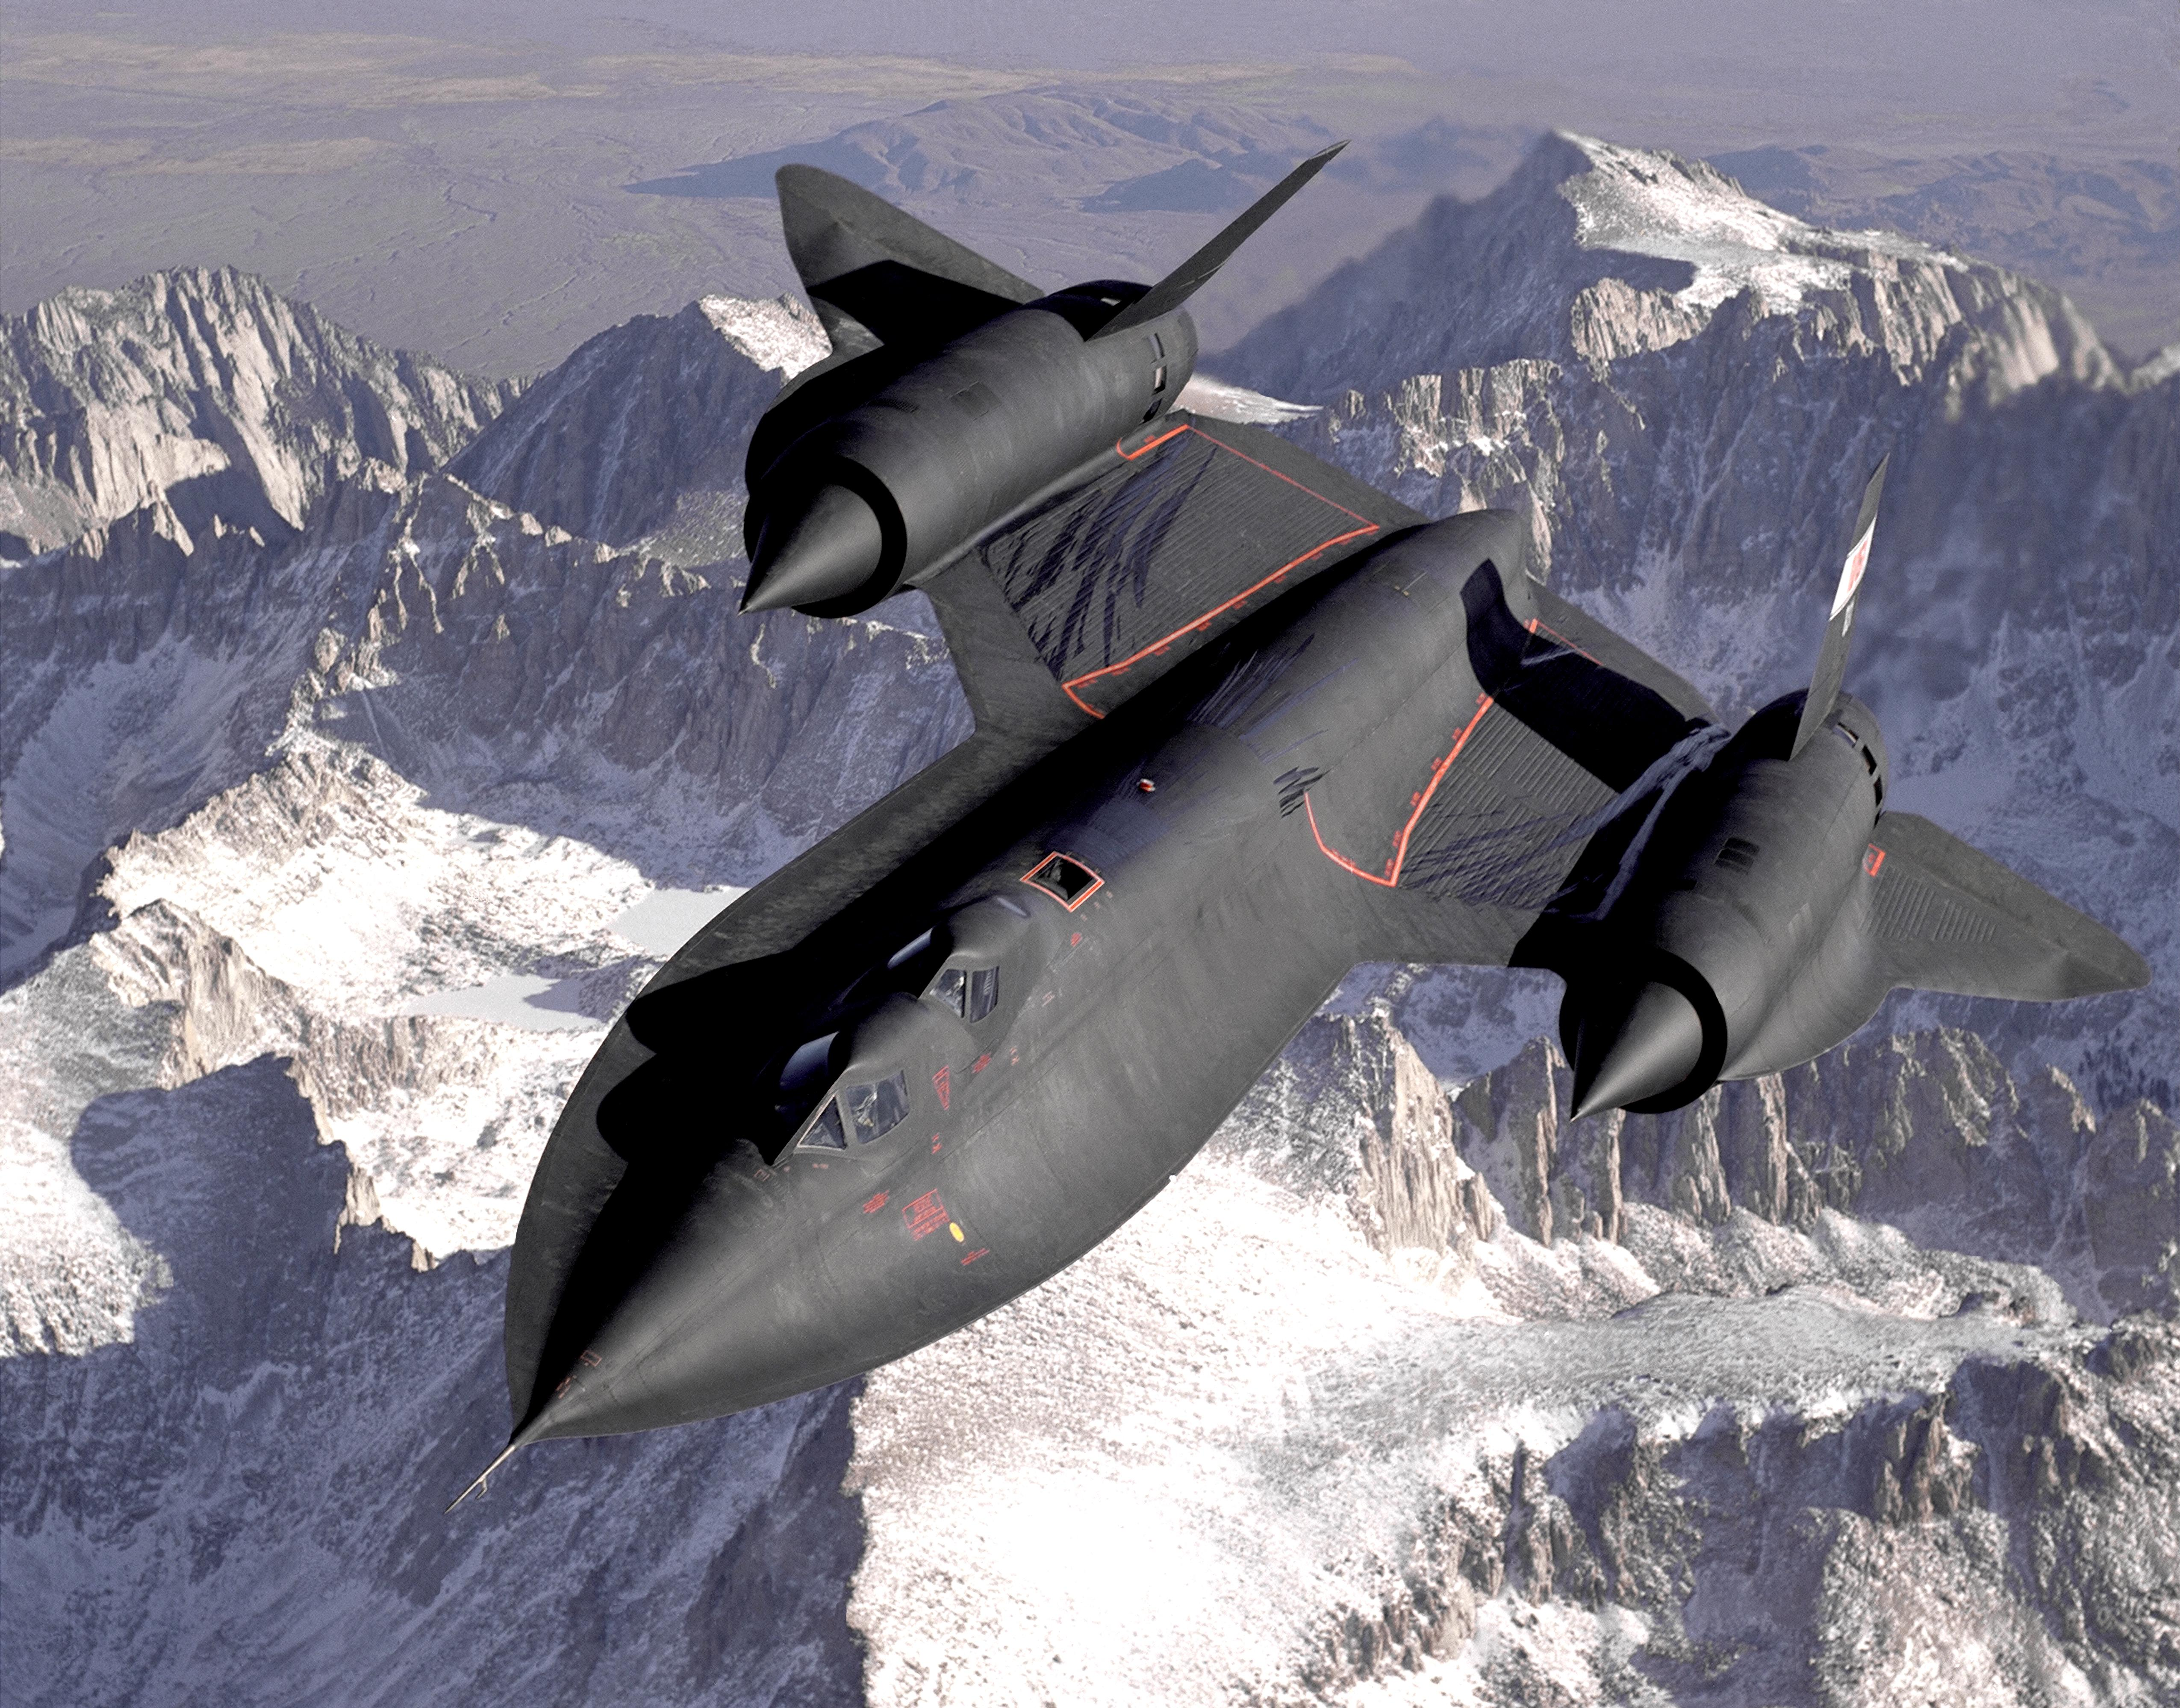 Blackbird, last flight, Lockheed aviation history, record flight, SR-71